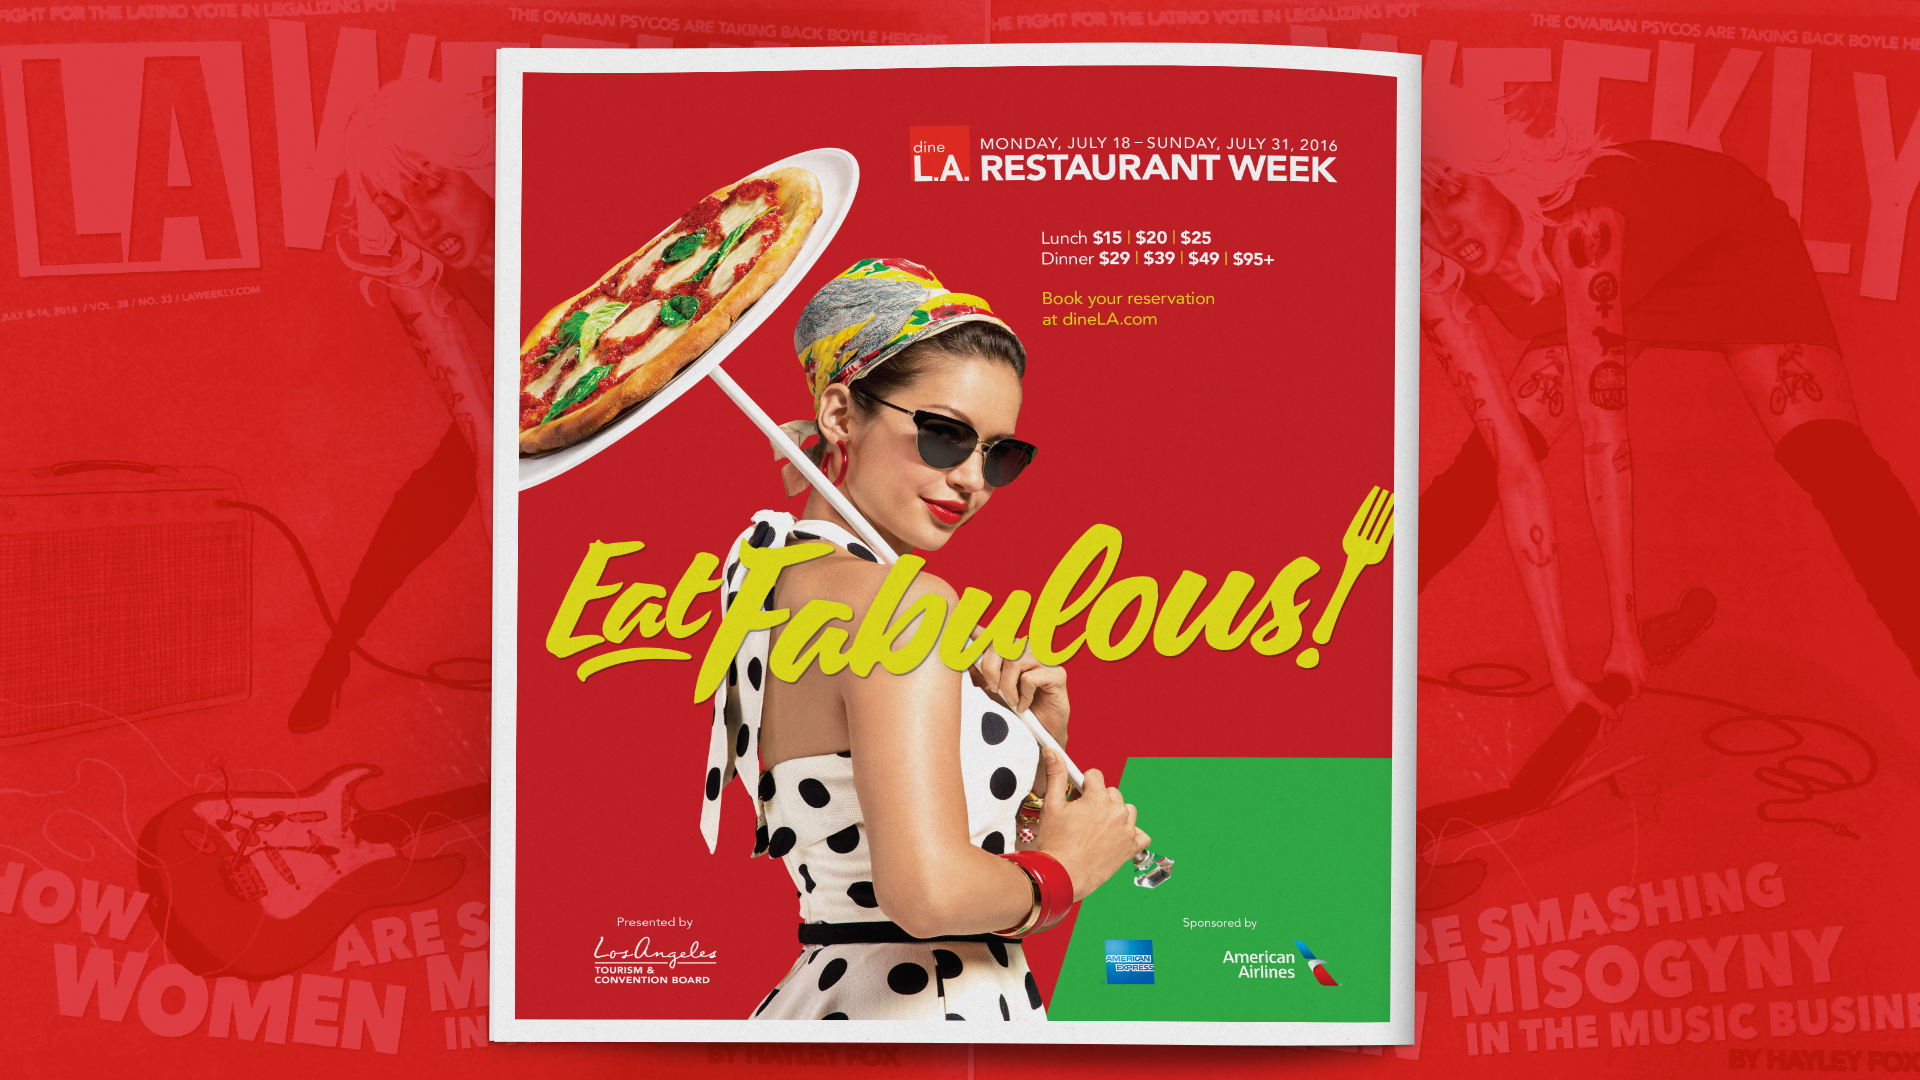 Eat Fabulous! ad campaign print ad for dineL.A. and L.A. Tourism & Convention Board by Tom Morhous and Remo+Oob, Ltd.